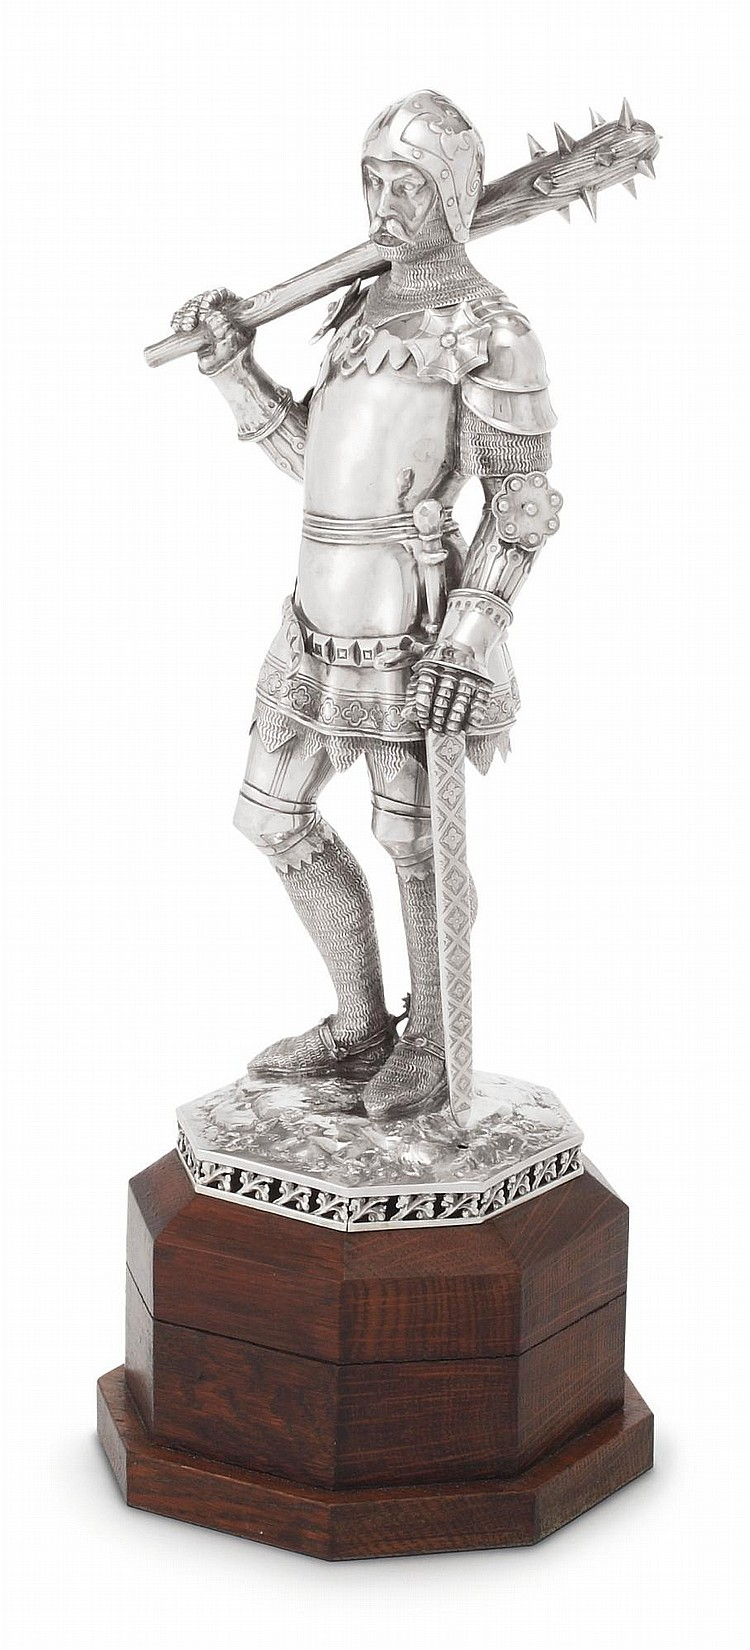 A GERMAN SILVER KNIGHT, LOUIS WERNER, BERLIN, CIRCA 1900 |